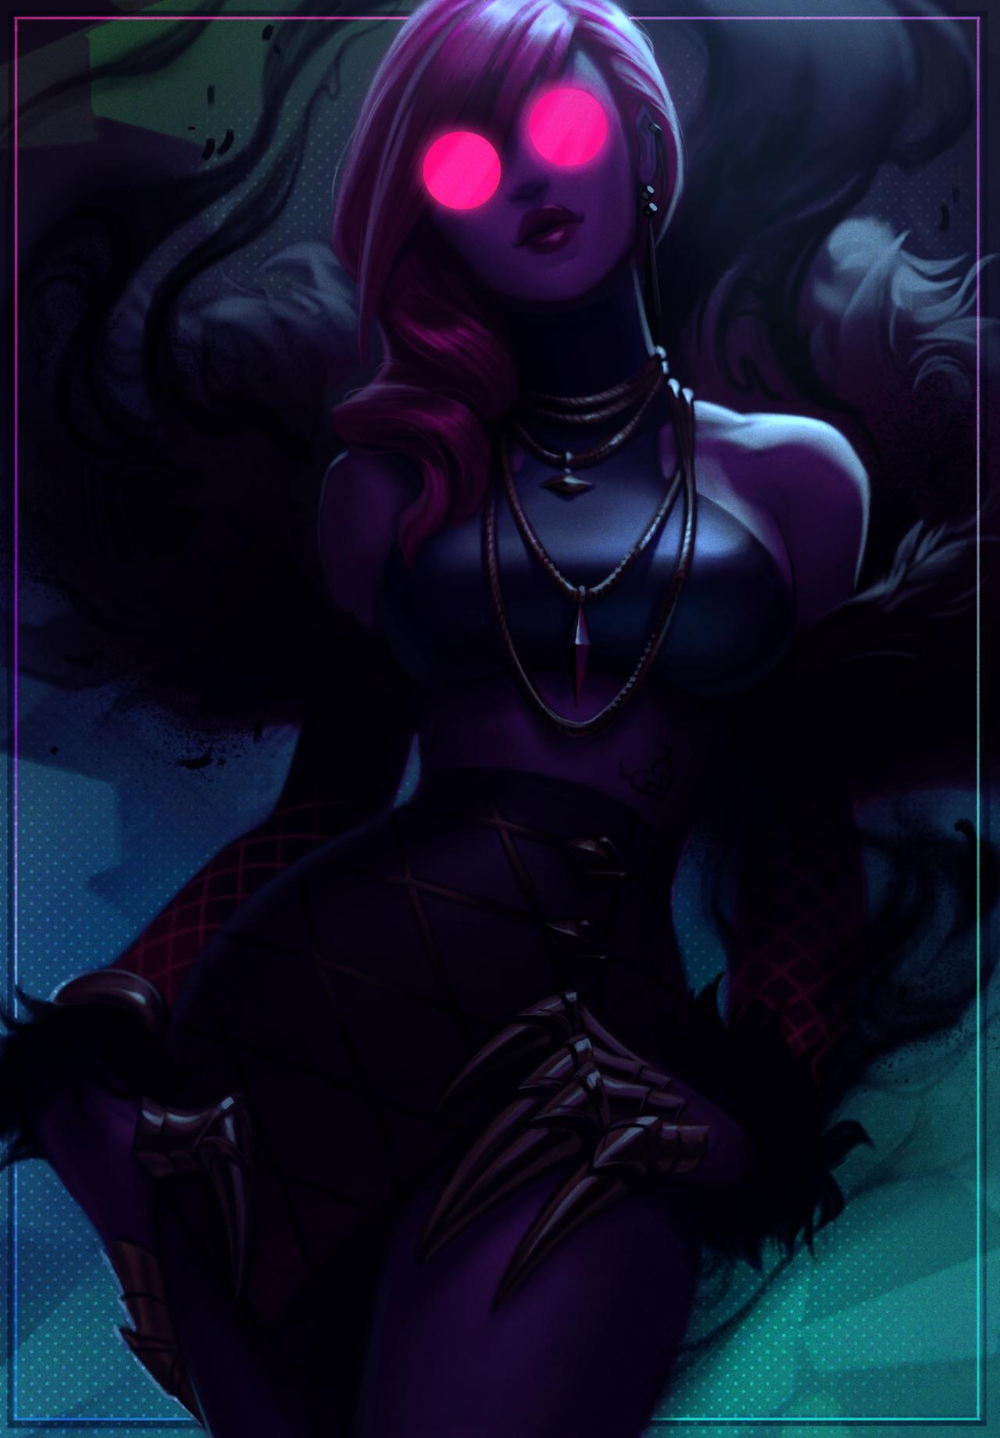 Kda Evelynn By Jessibeans On Deviantart Lol League Of Legends League Of Legends League Of Legends Characters